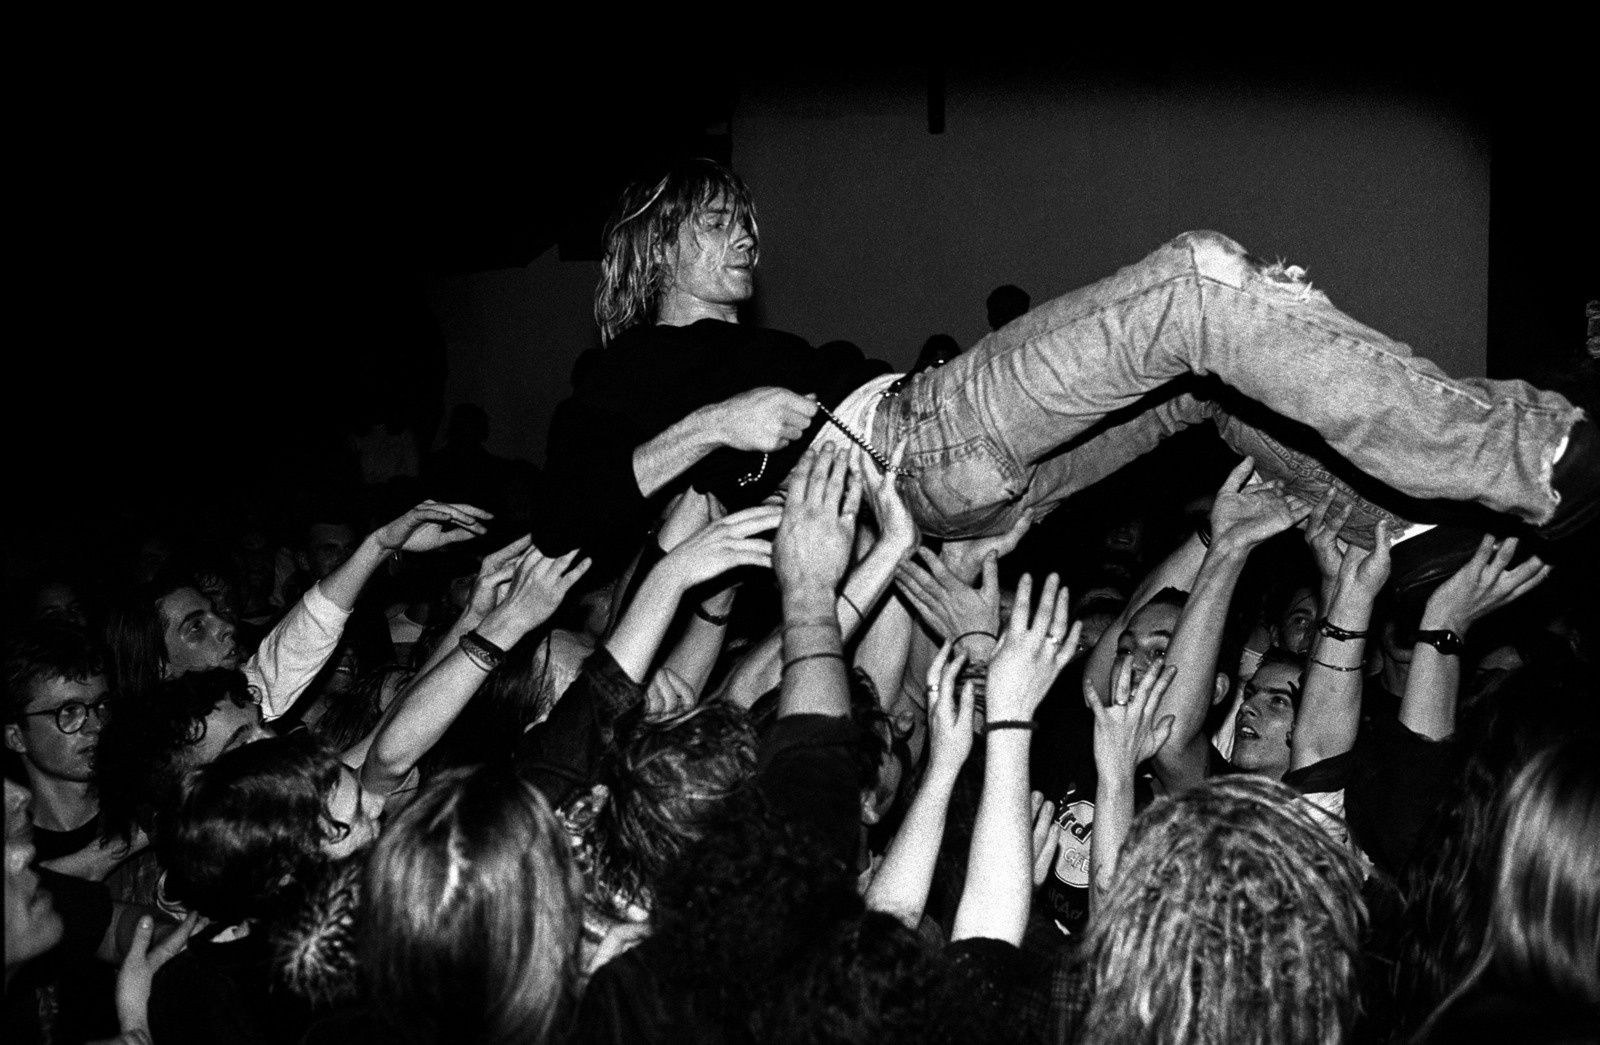 Kurt Cobain crowd surfs during a Nirvana show in Frankfurt, Germany in 1991